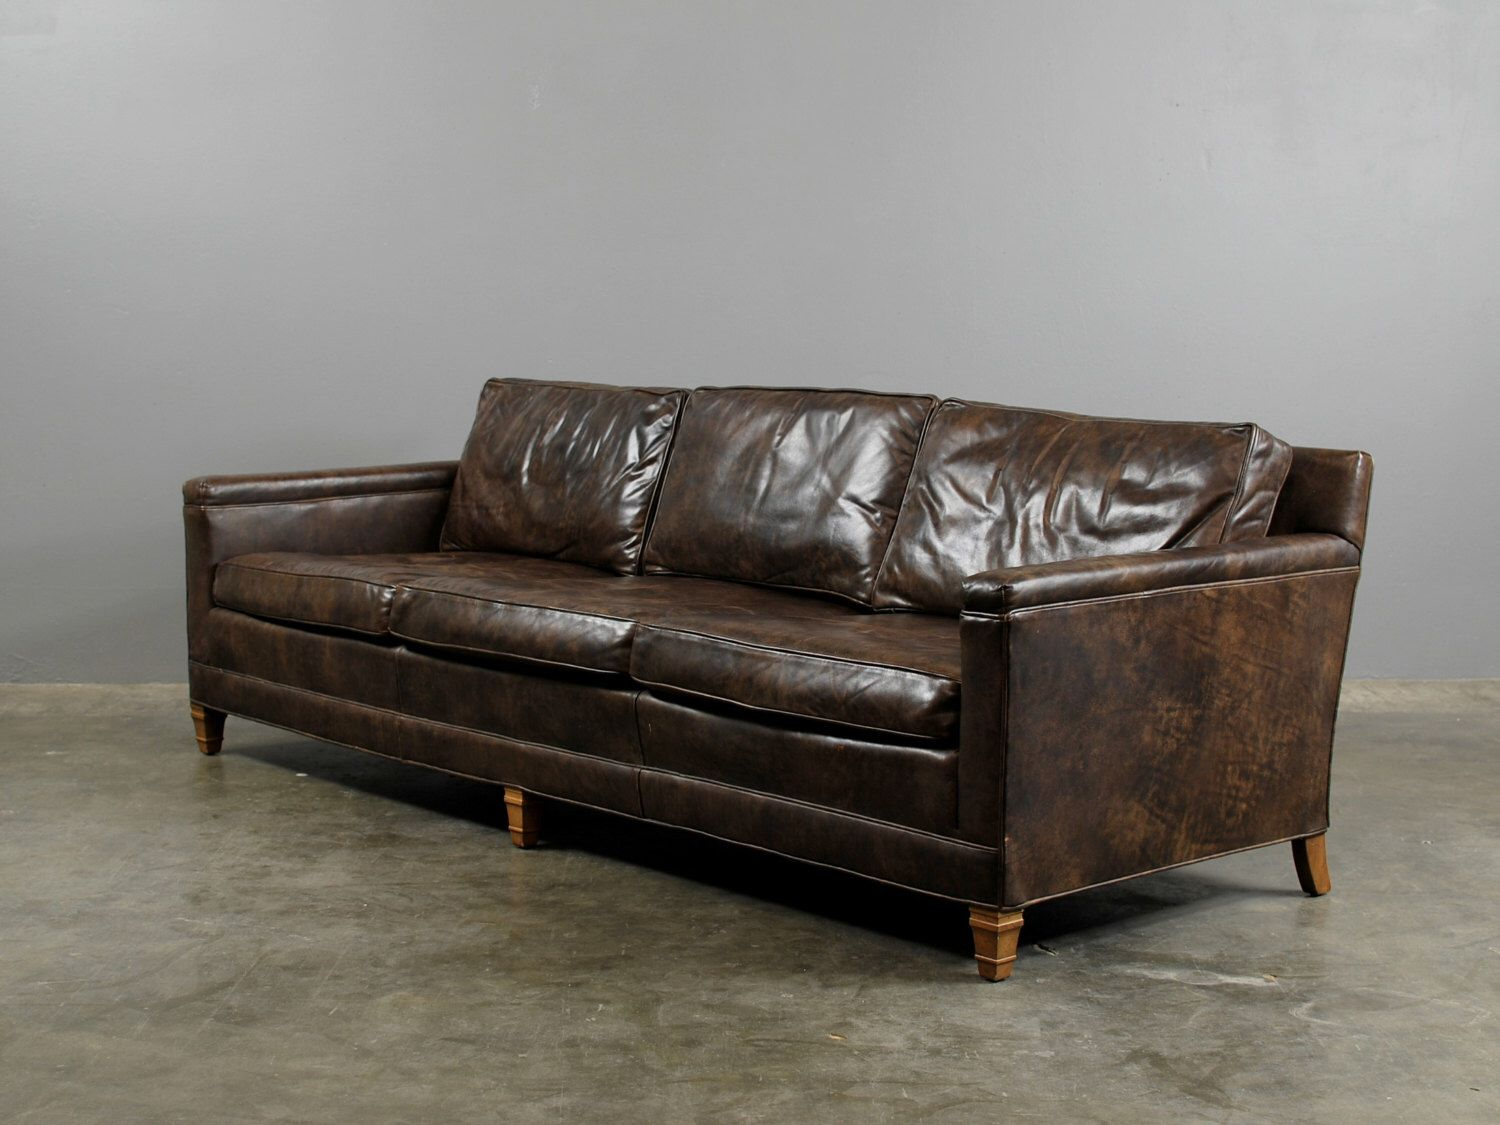 Reserved For Zoe Brown Vintage Leather Sofa Dark Chocolate Brown Vintage Leather Sofa Leather Sofa Vintage Sofa